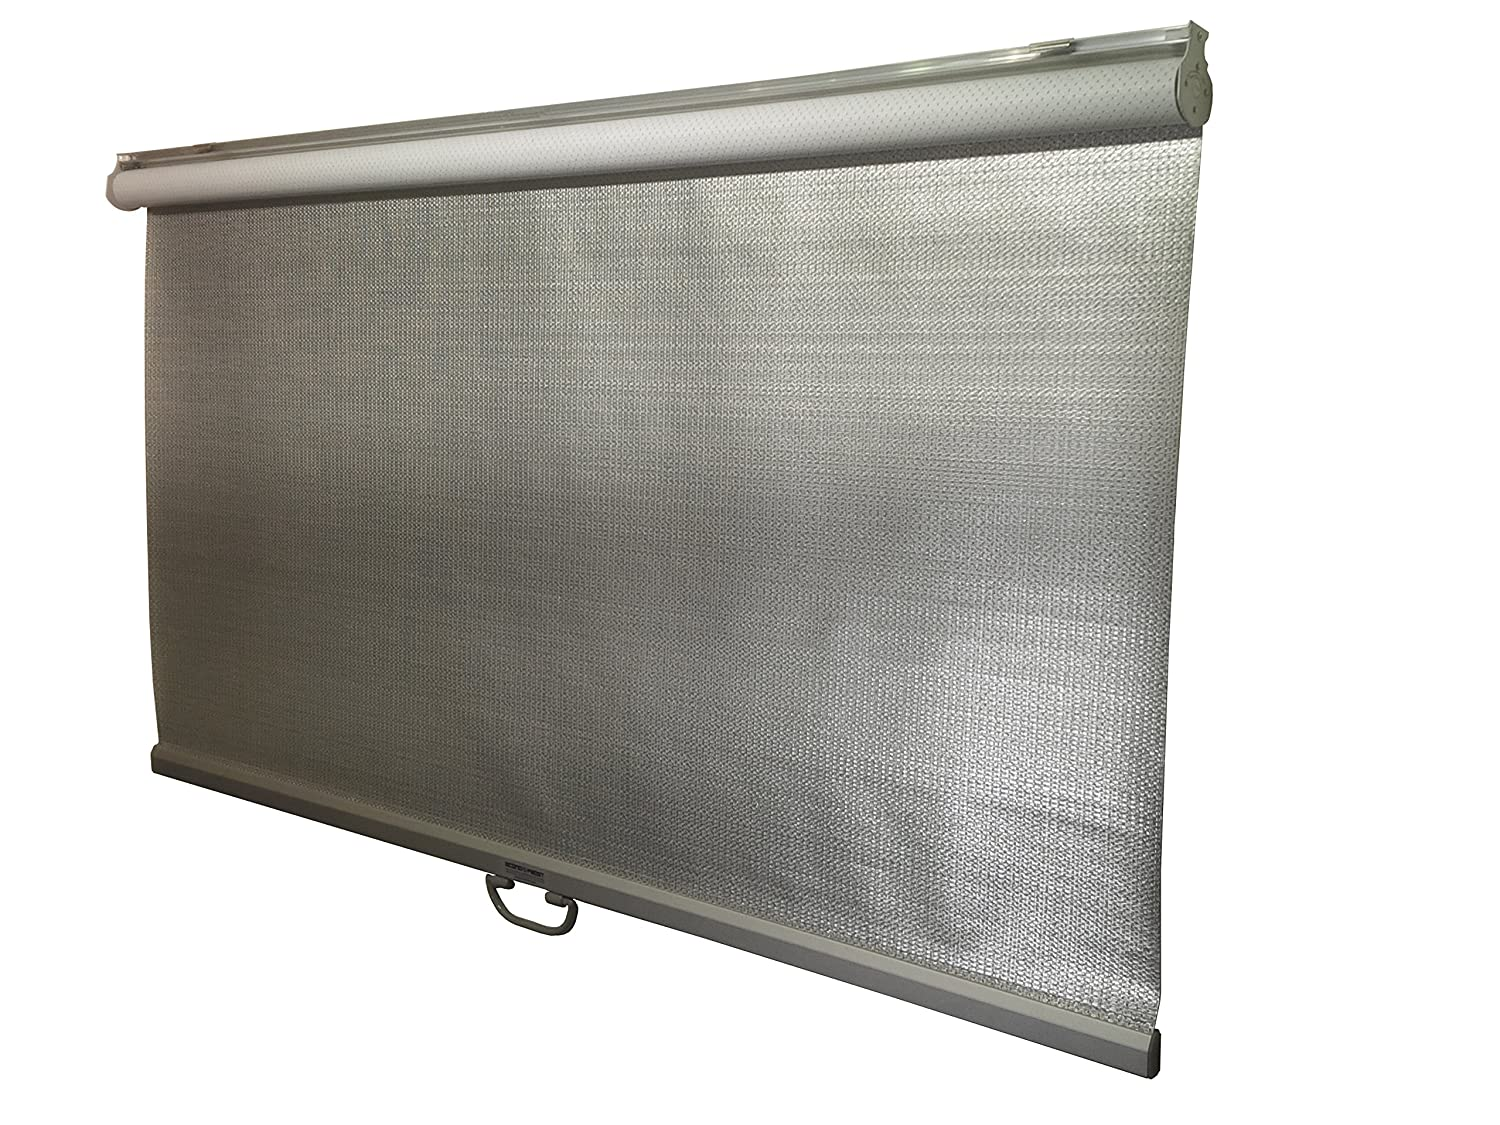 Econofrost 9600 Series OEM/Non- Cassette • 6 Foot • Attaches Inside Canopy of Upright Multi-Deck Refrigerated Display Cases • Ideal to Specify in New Equipment Purchases